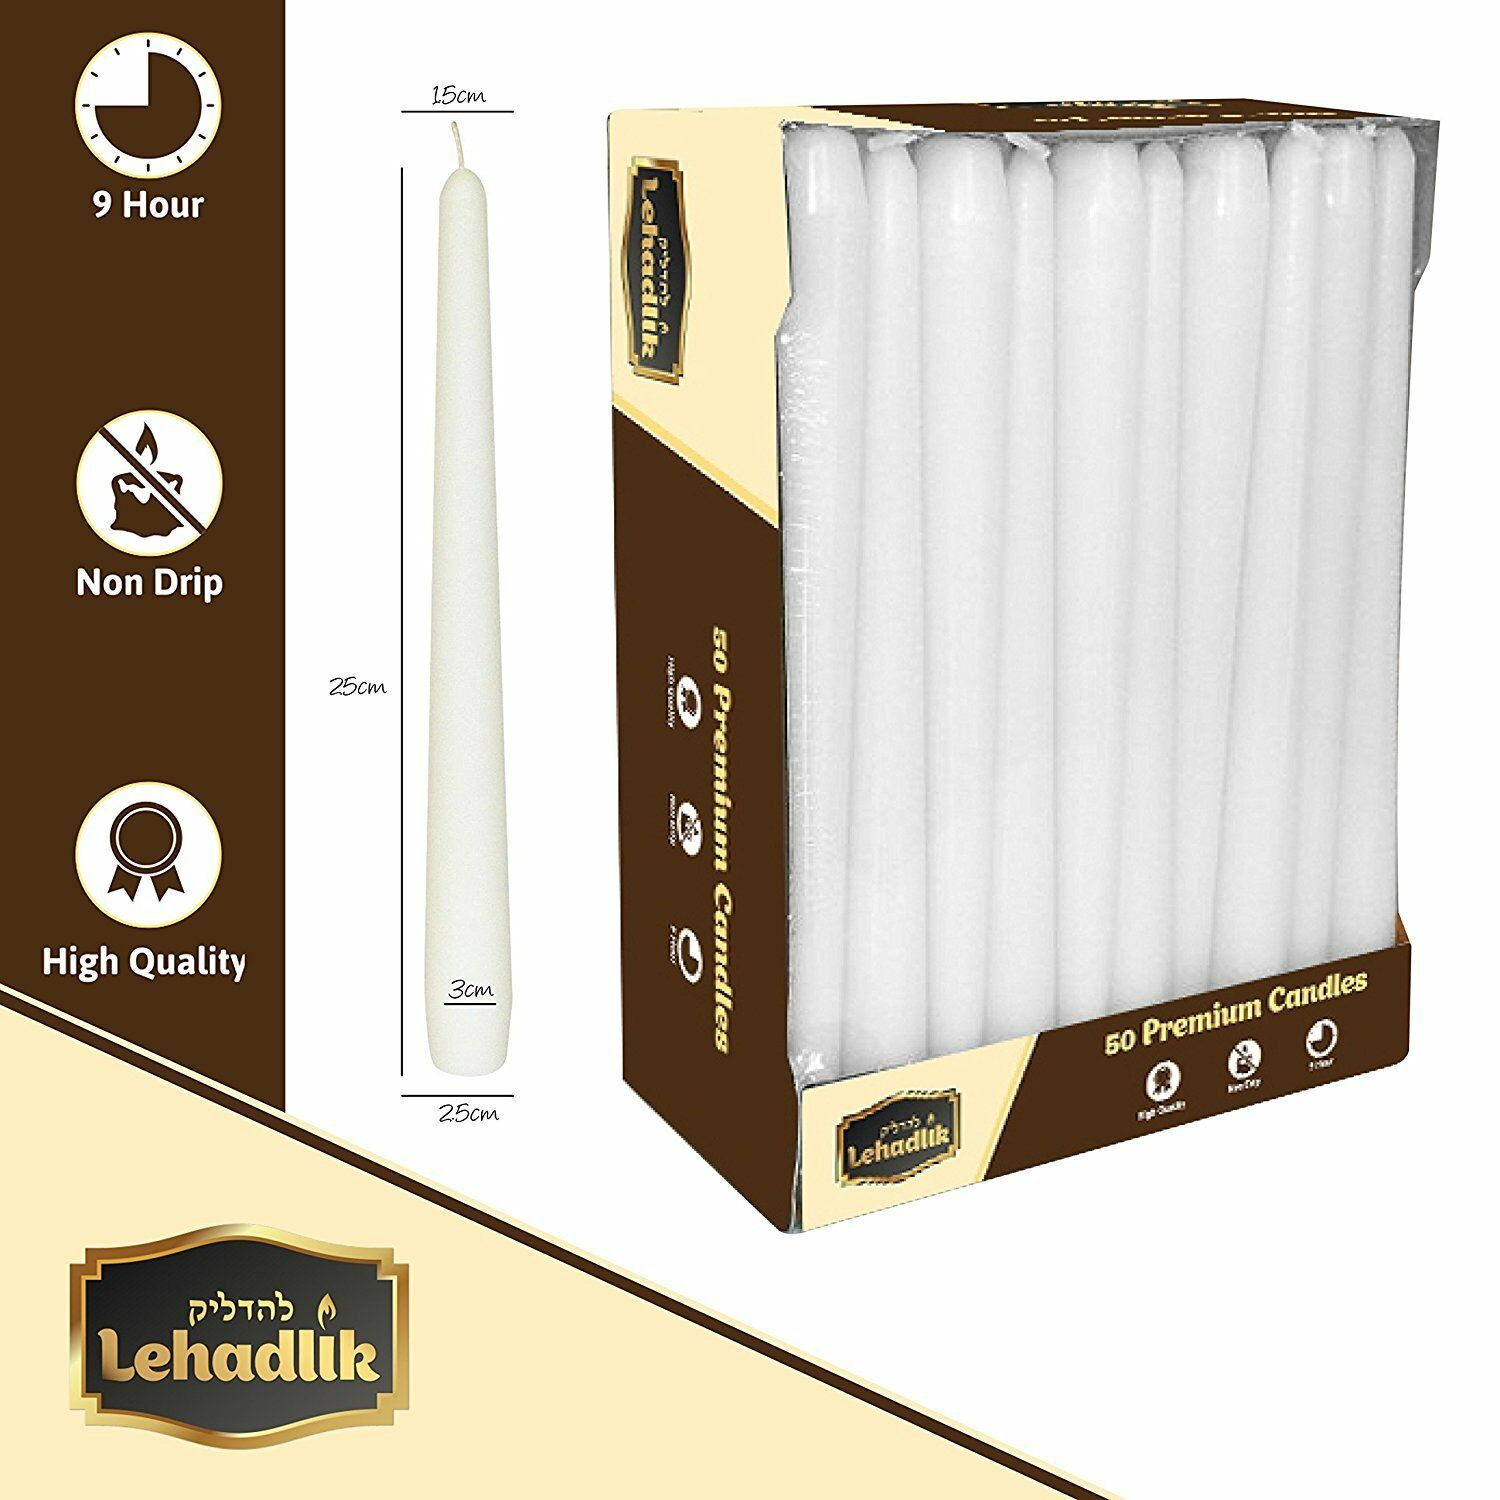 Lehadlik - 25cm Unscented White Bistro Style Smokeless Tapered Dinner Candles 8-9 Hours Burn Time Non Drip High Quality for Home / Events / Food Table / Restaurant / Wedding / Party * 50 In a Pack * Non-Drip